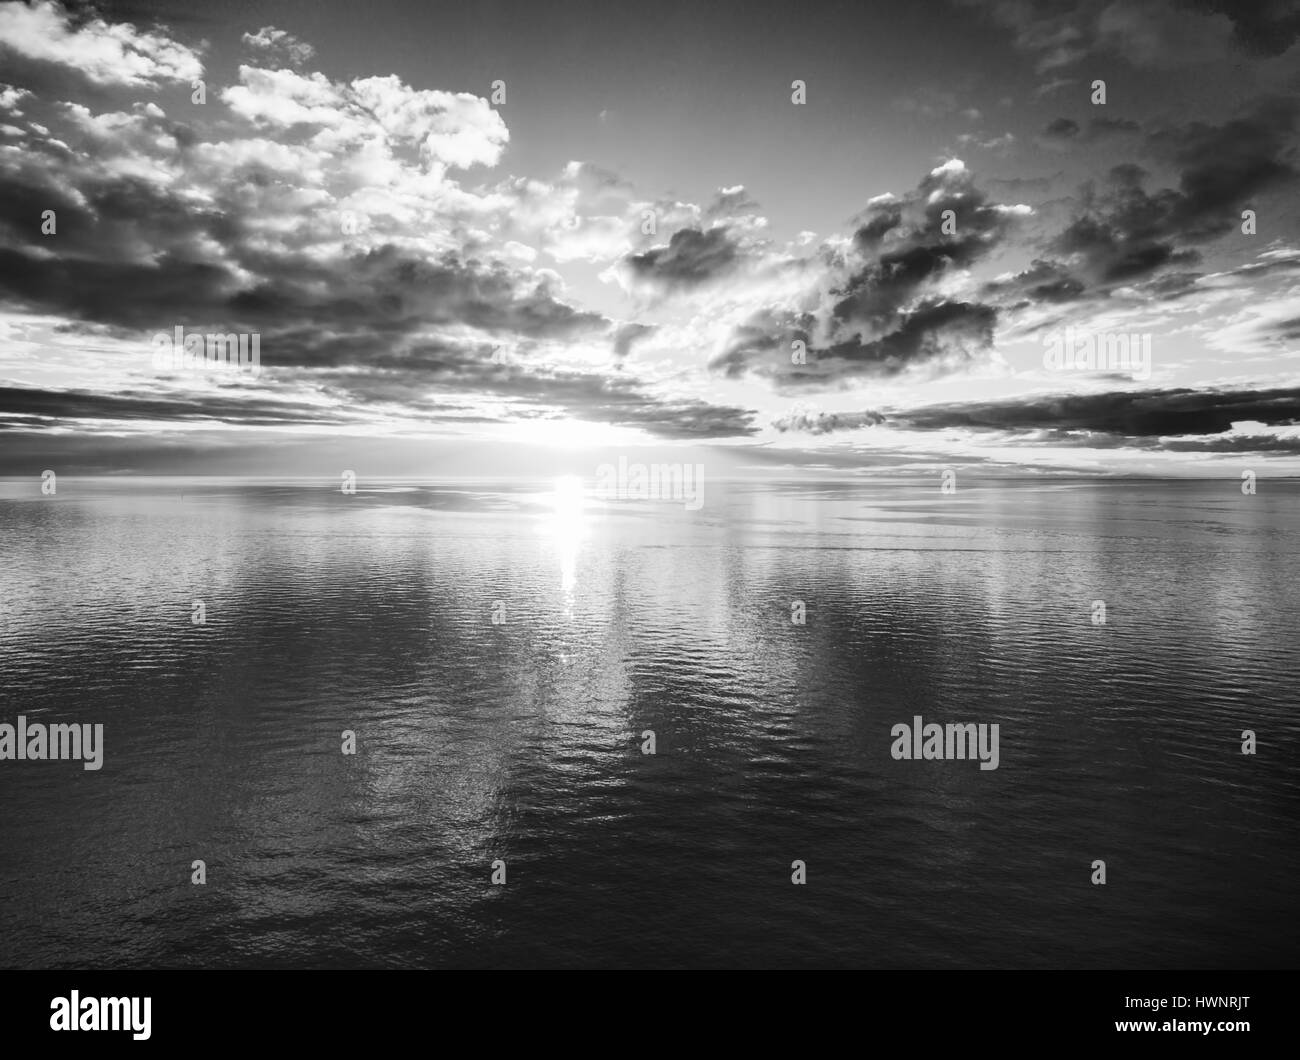 Black and white sunset over water aerial landscape - Stock Image